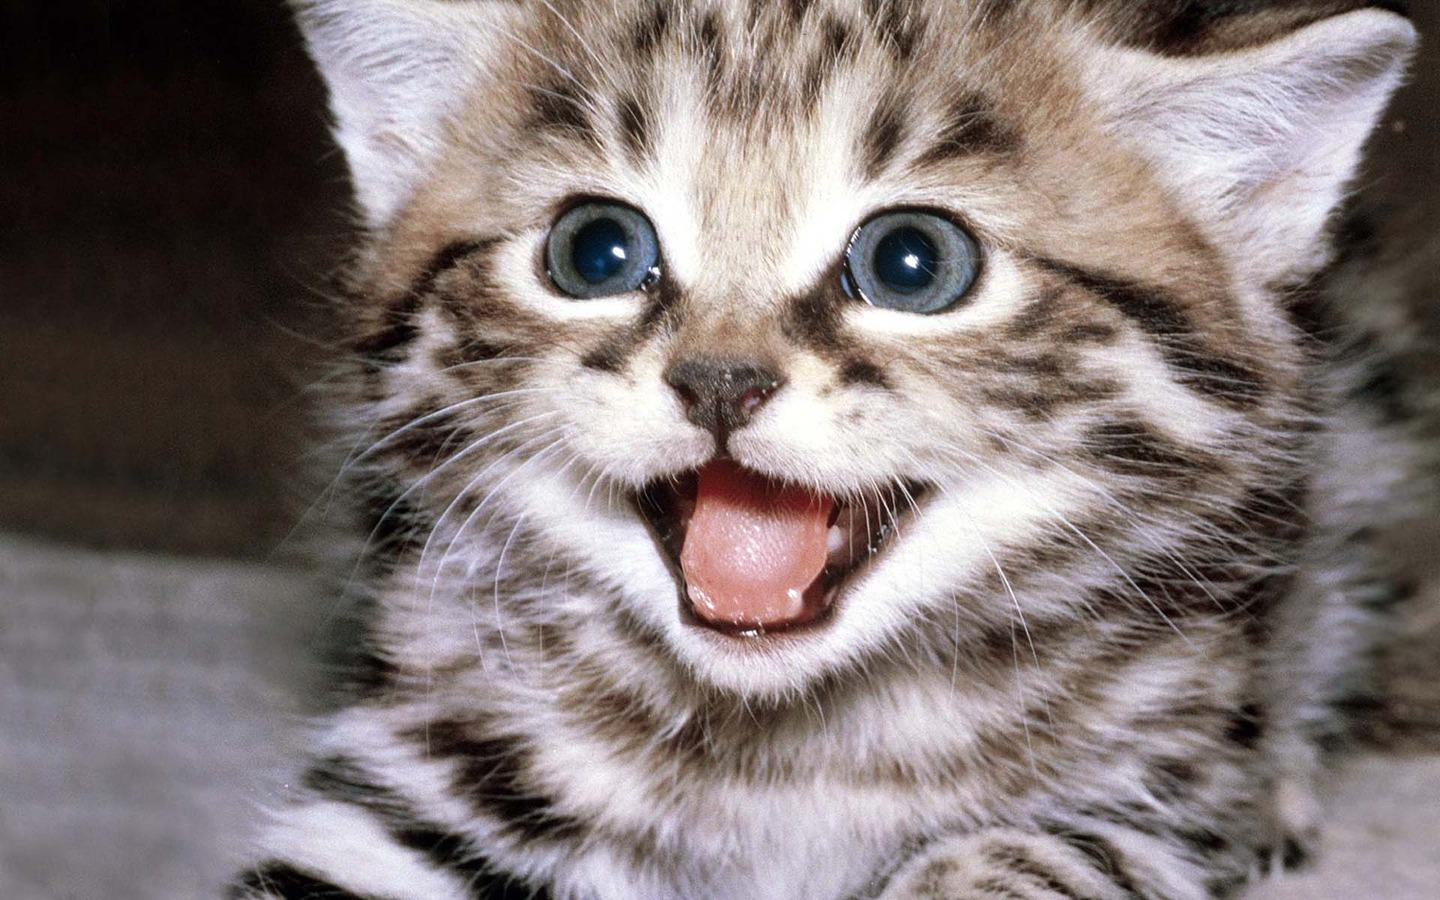 Cute Kitten Wallpaper Apl Android Di Google Play